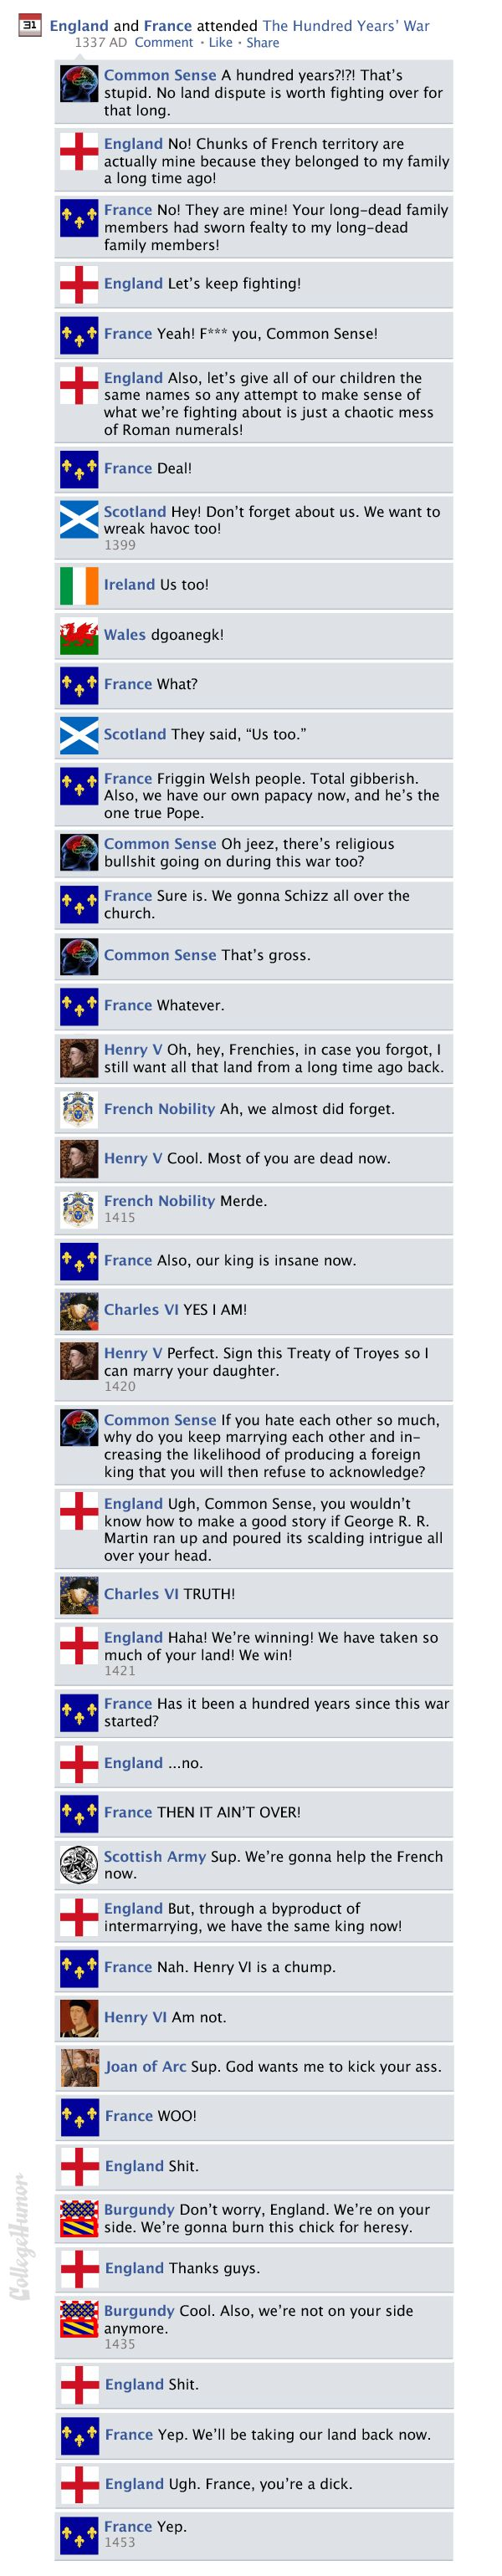 Facebook history of the world  Hundred Years' War. Sounds about right. This may be useful for Euro...